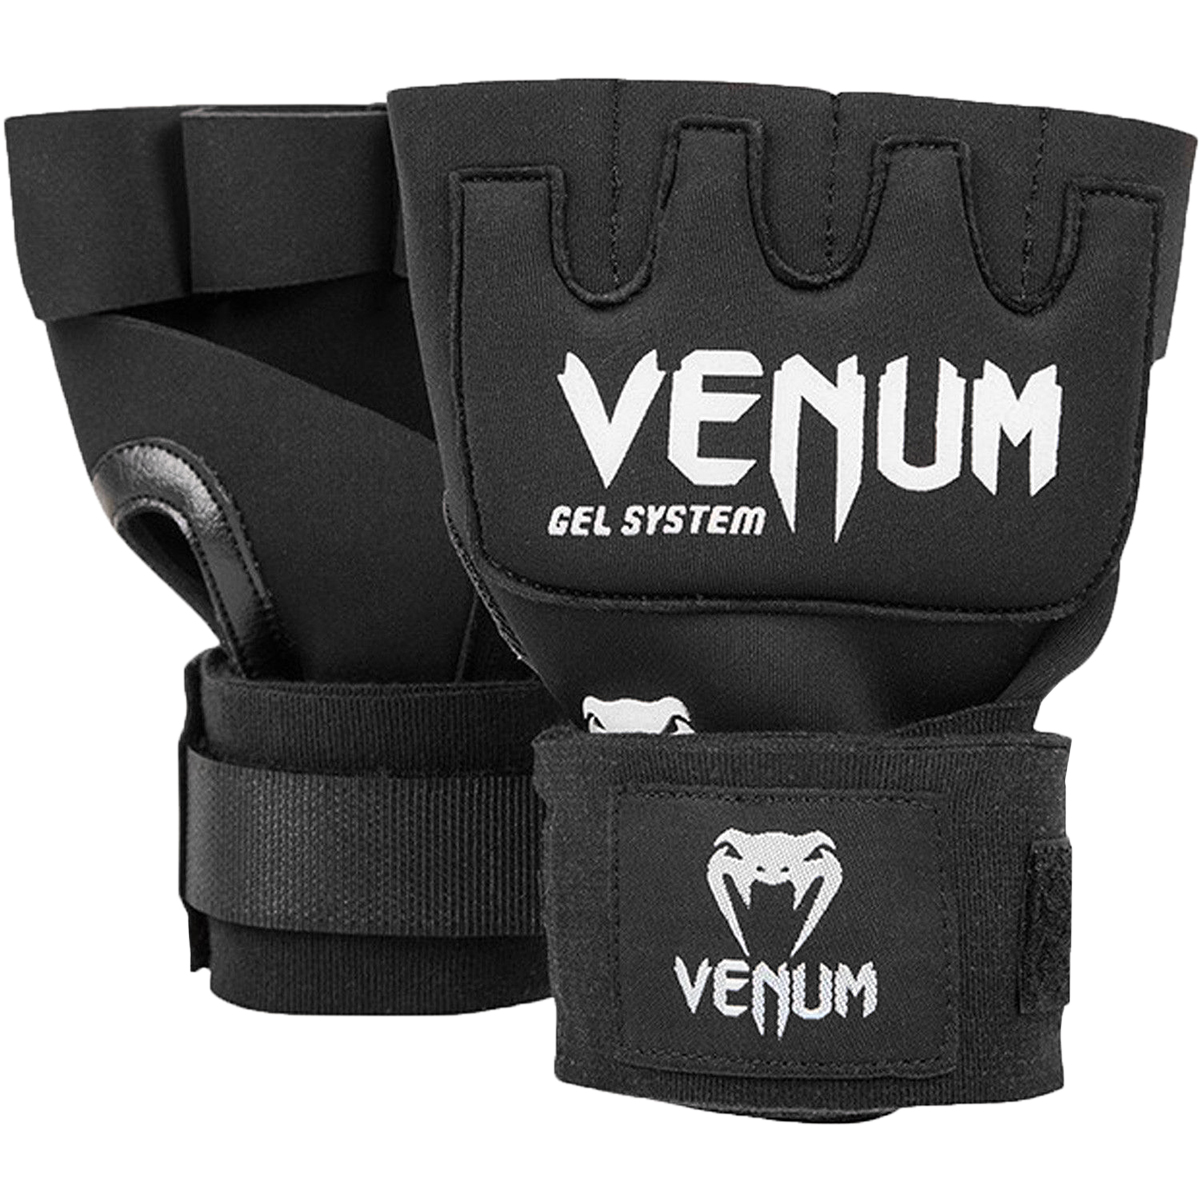 Venum-Kontact-Protective-Shock-Absorbing-Gel-MMA-Glove-Wraps thumbnail 11